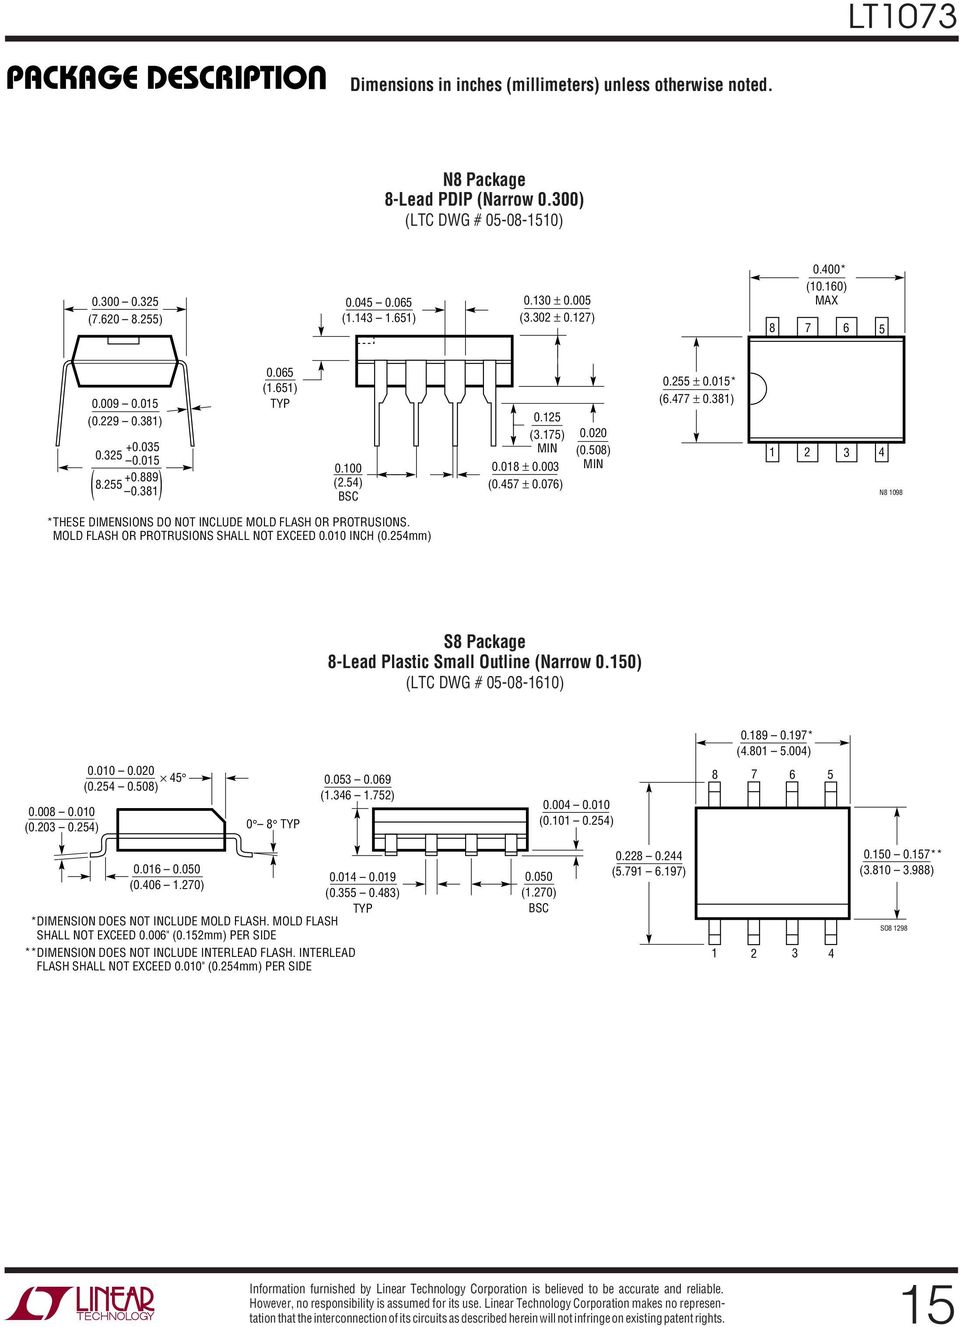 54) BSC *THESE DIMENSIONS DO NOT INCLDE MOLD FLASH OR PROTRSIONS. MOLD FLASH OR PROTRSIONS SHALL NOT EXCEED 0.010 INCH (0.254mm) 0.255 ± 0.015* (6.477 ± 0.381) 0.125 (3.175) MIN 0.020 (0.